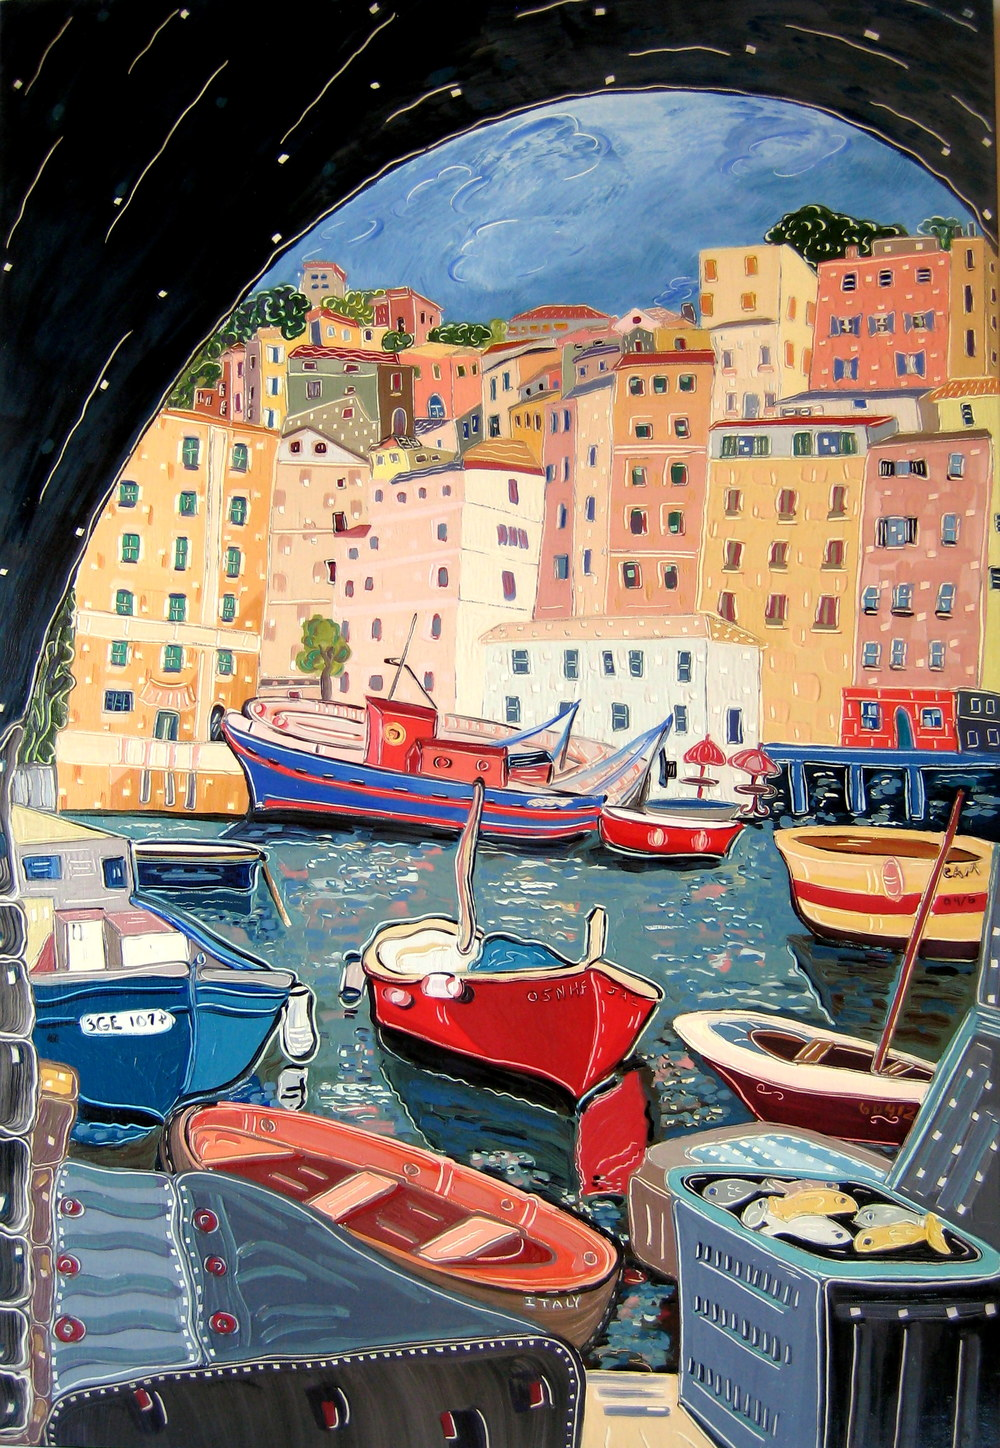 Through the Arch into Camogli , oil on panel, 32x22, $3,900